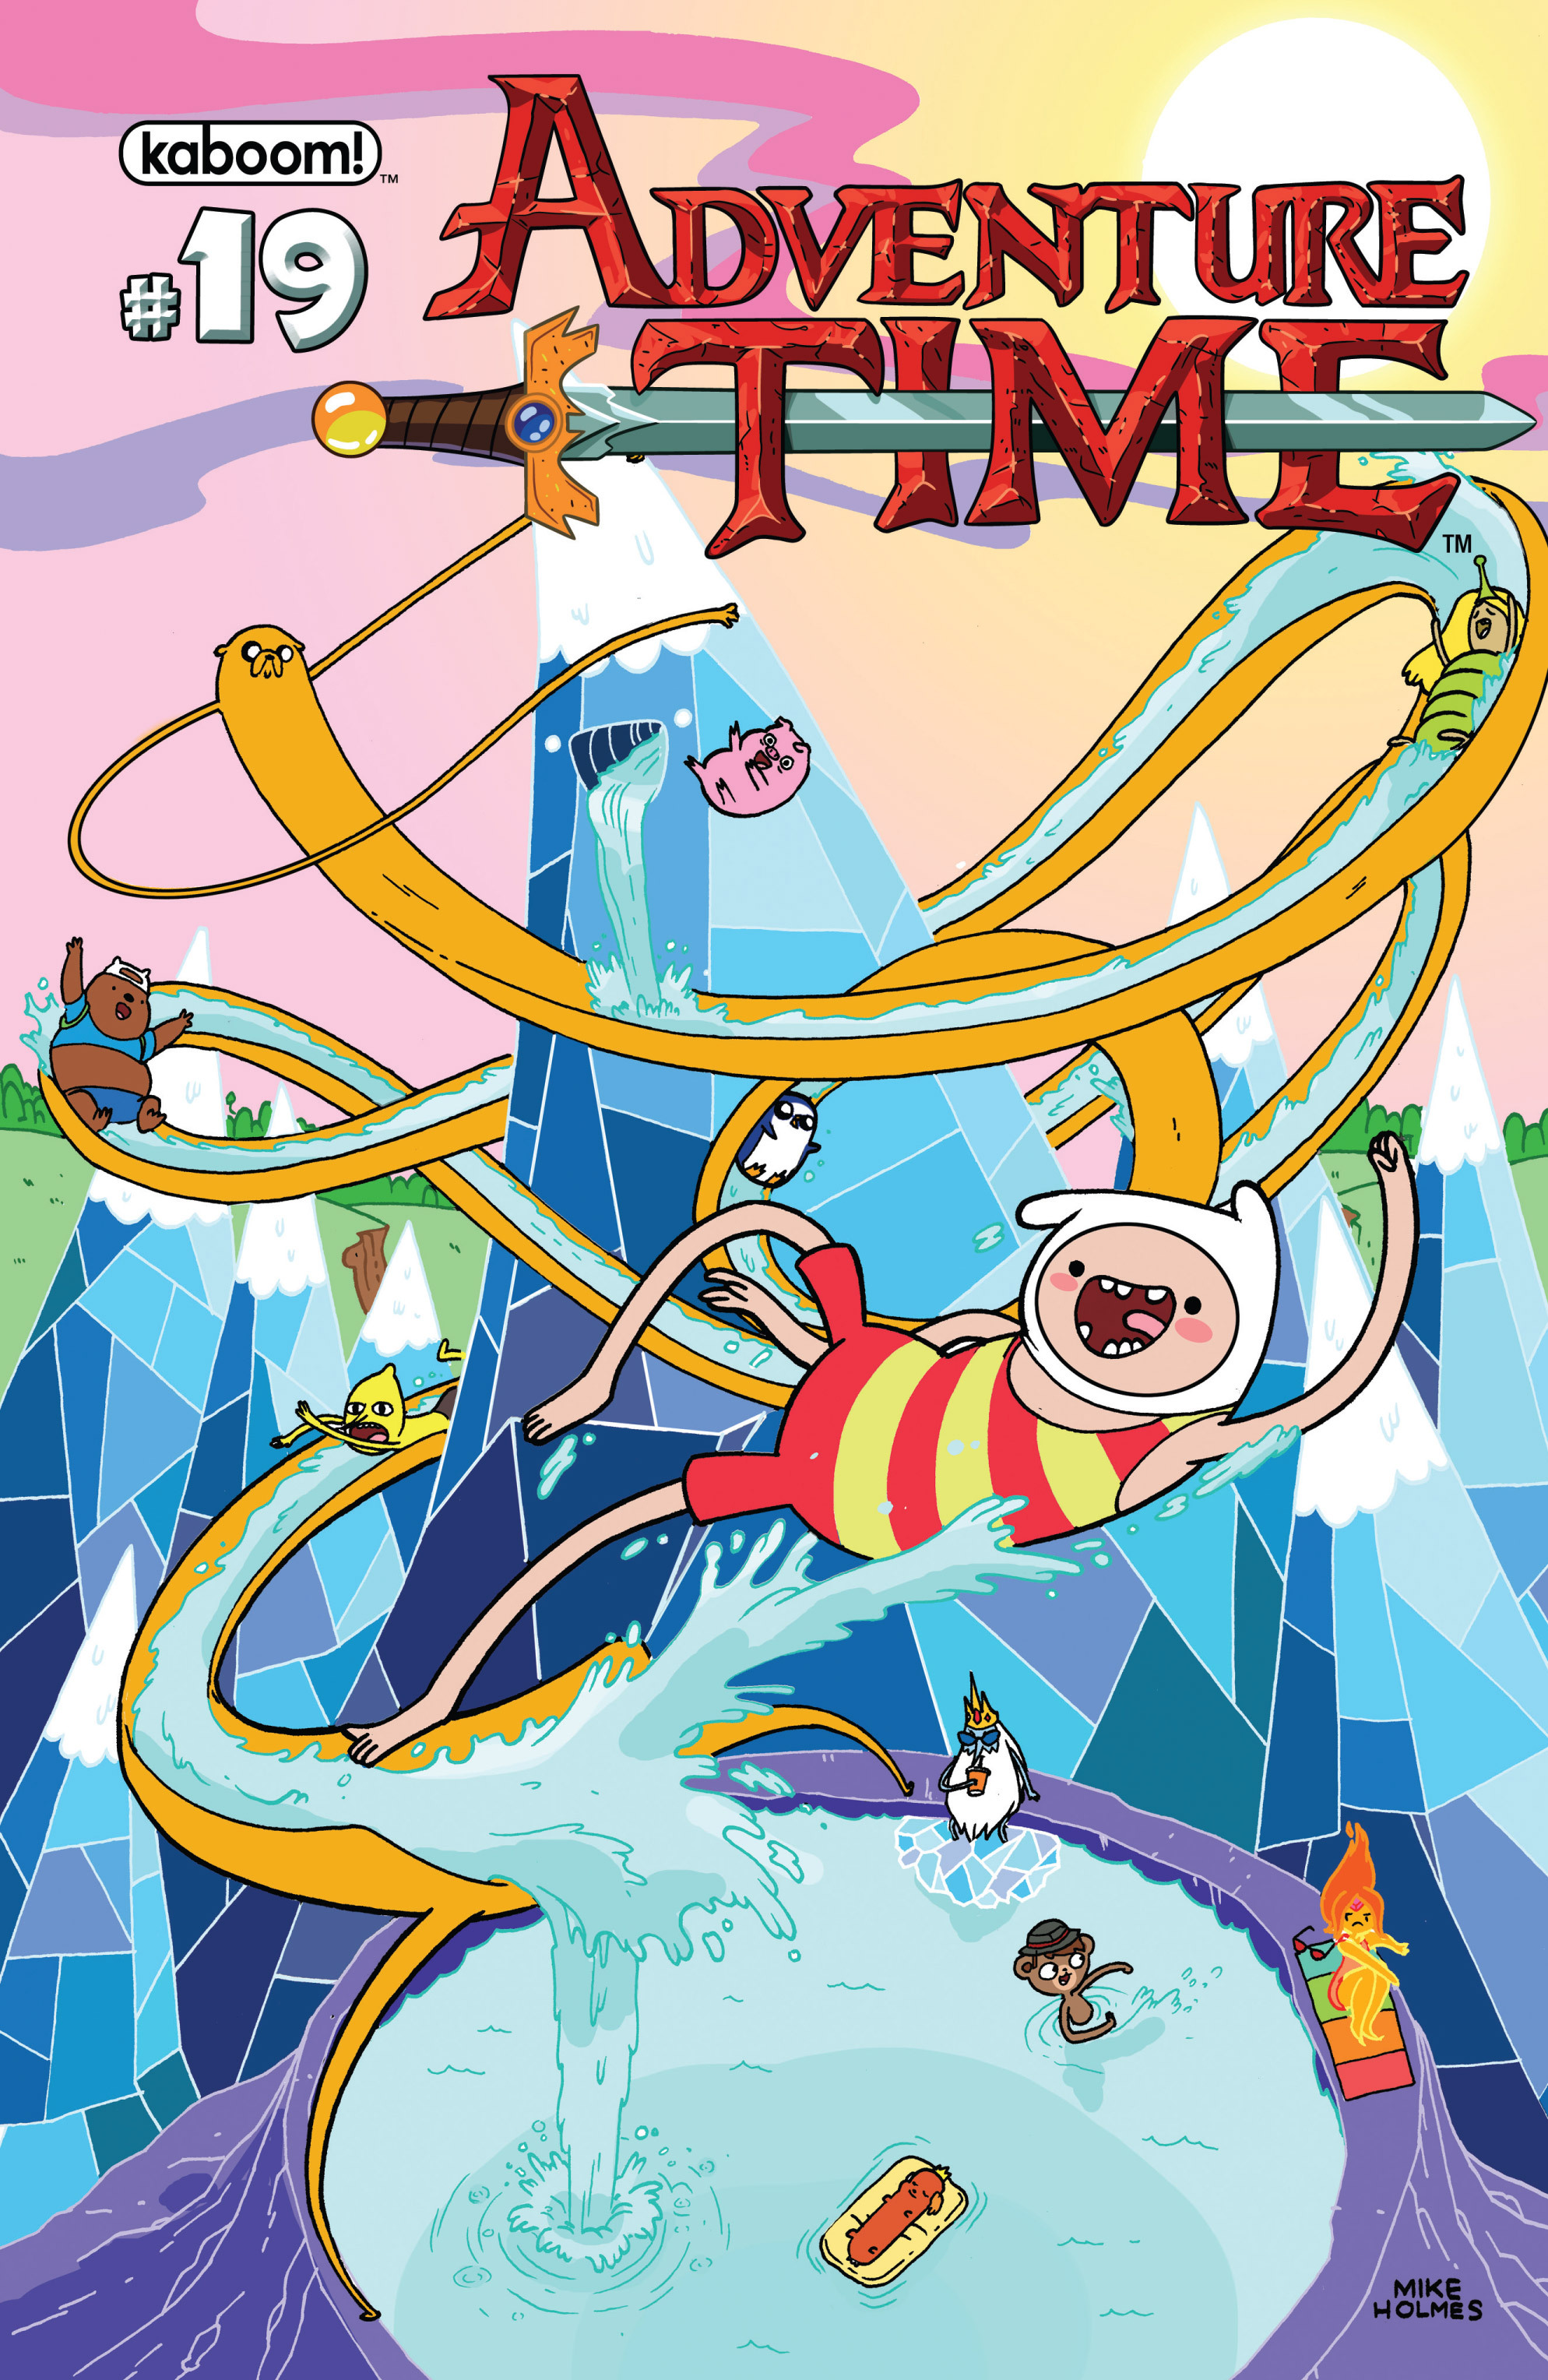 Read online Adventure Time comic -  Issue #19 - 1